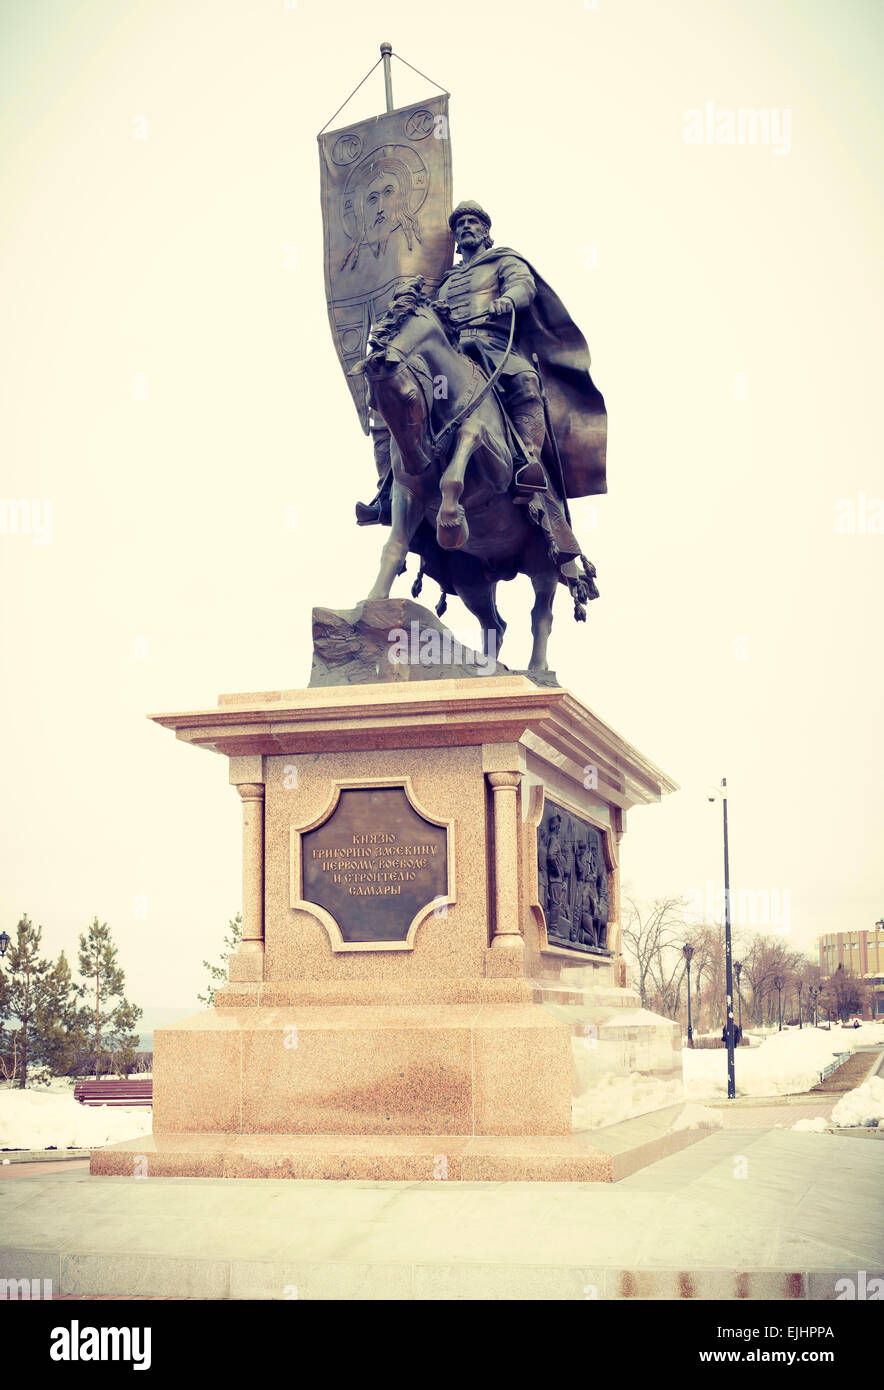 Monument to the first governor of Samara - Grigory Zasekin - Stock Image